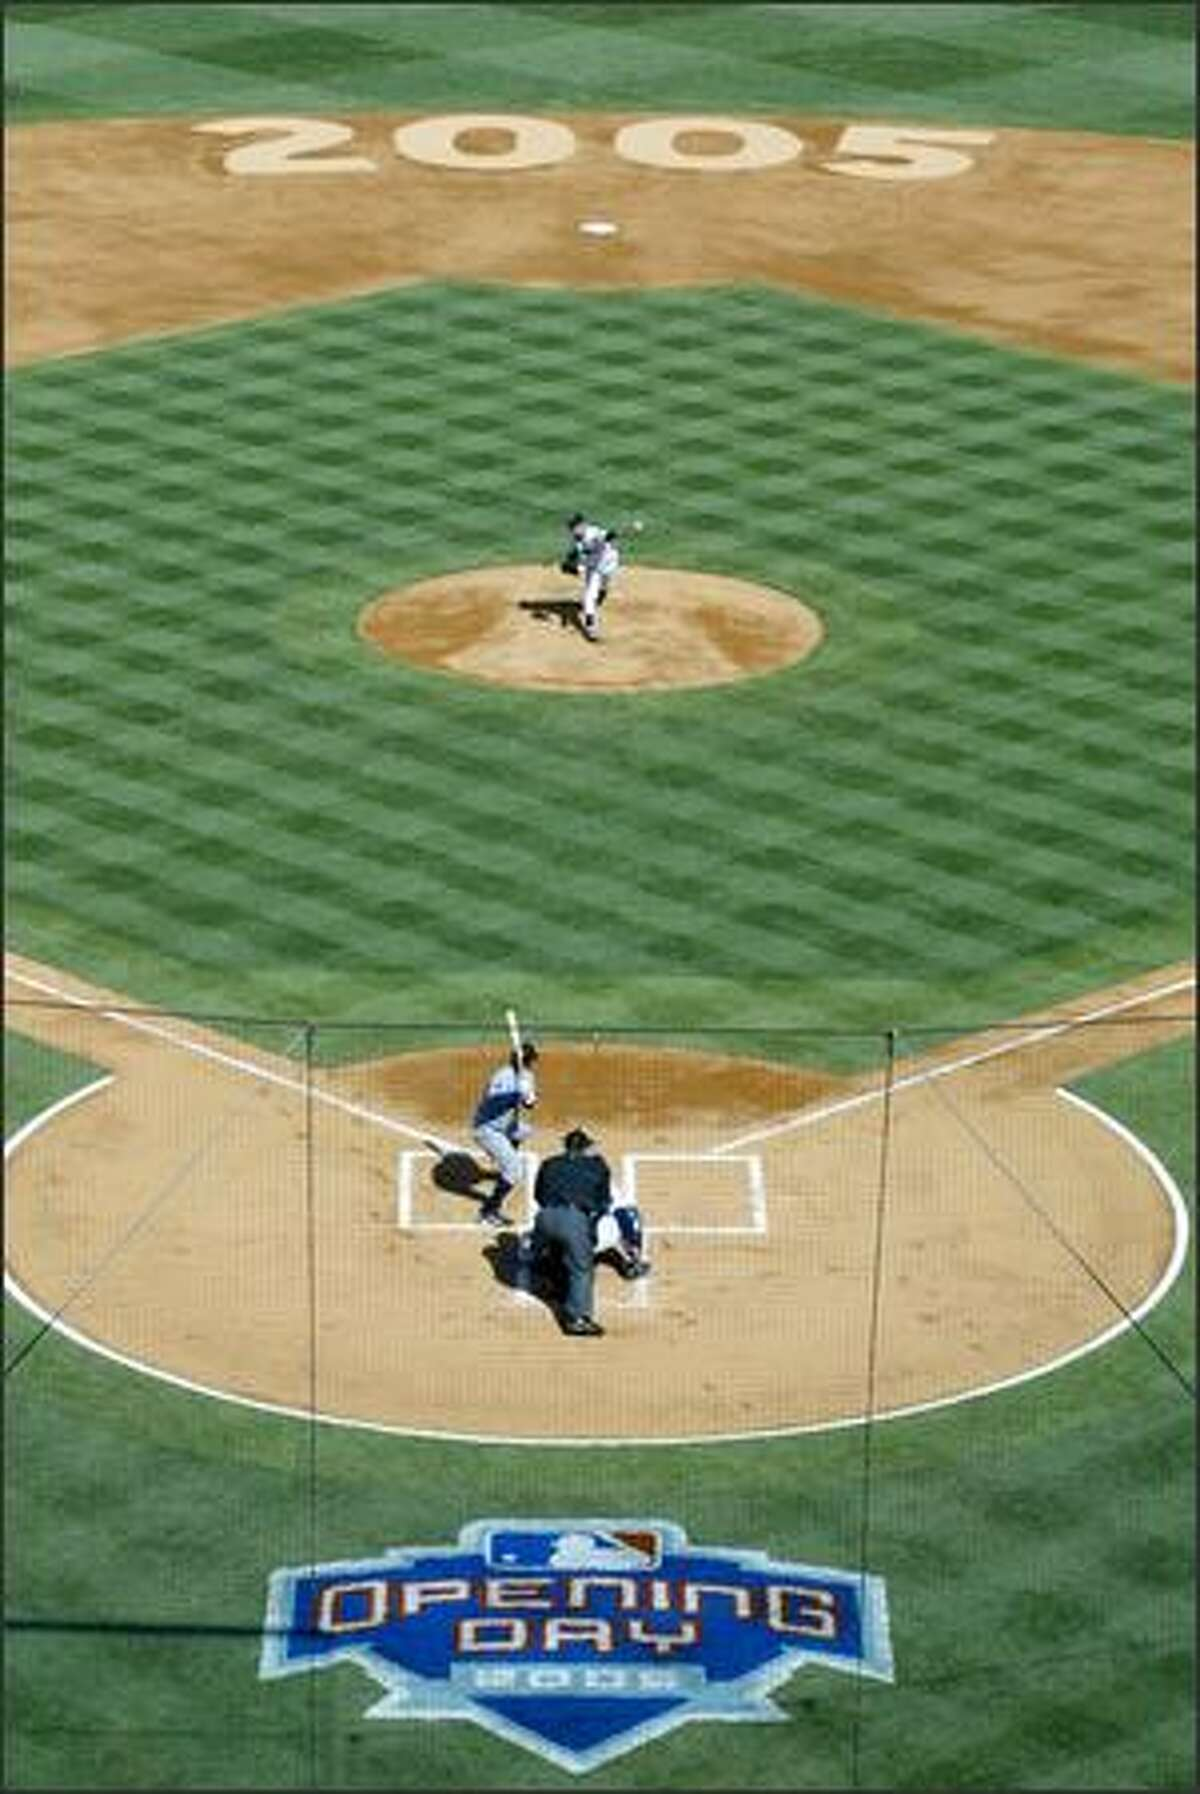 Mariners pitcher Jamie Moyer throws his first pitch against the Twins.